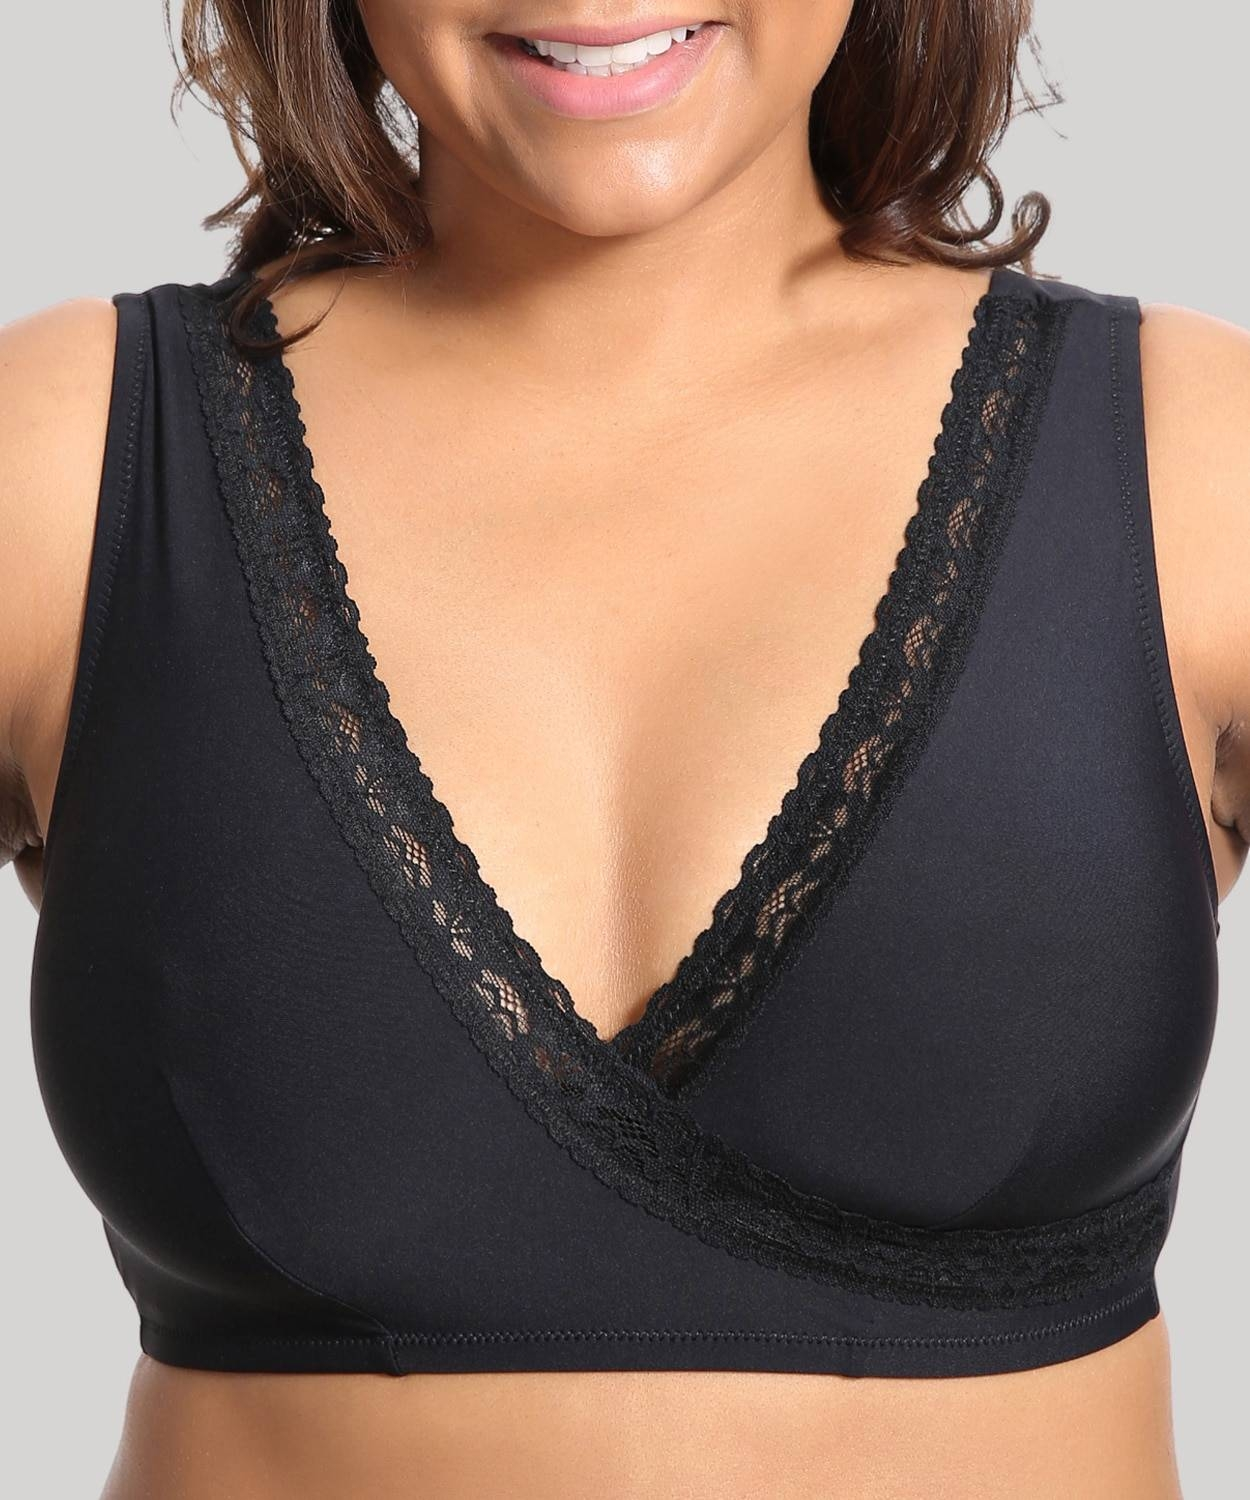 Womens Plus Size Soft Cup Comfort Wirefree Sleep Lace Bra,Mochaccino07,D,44